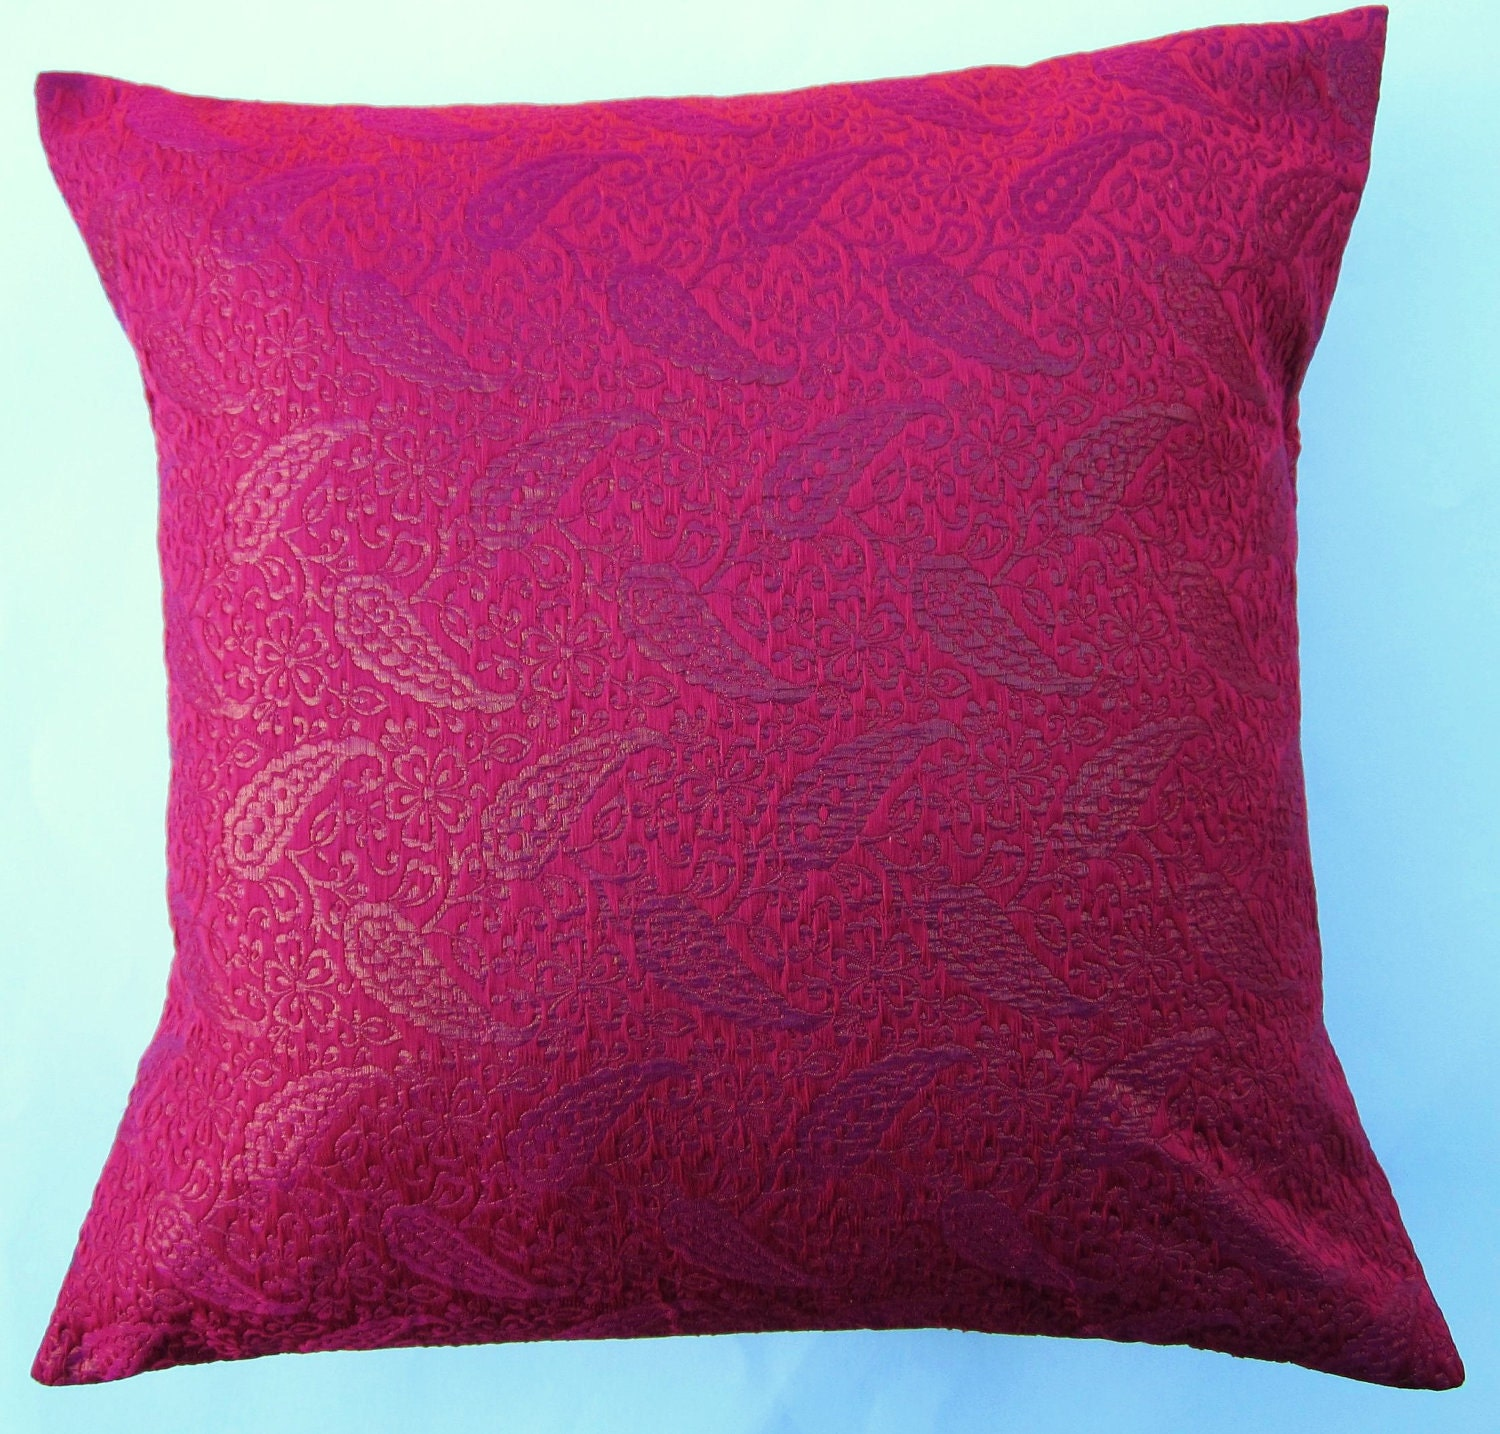 Fuschia Throw Pillows : Hot Pink Throw Pillow Cover Fuschia Silk Brocade by sassypillows